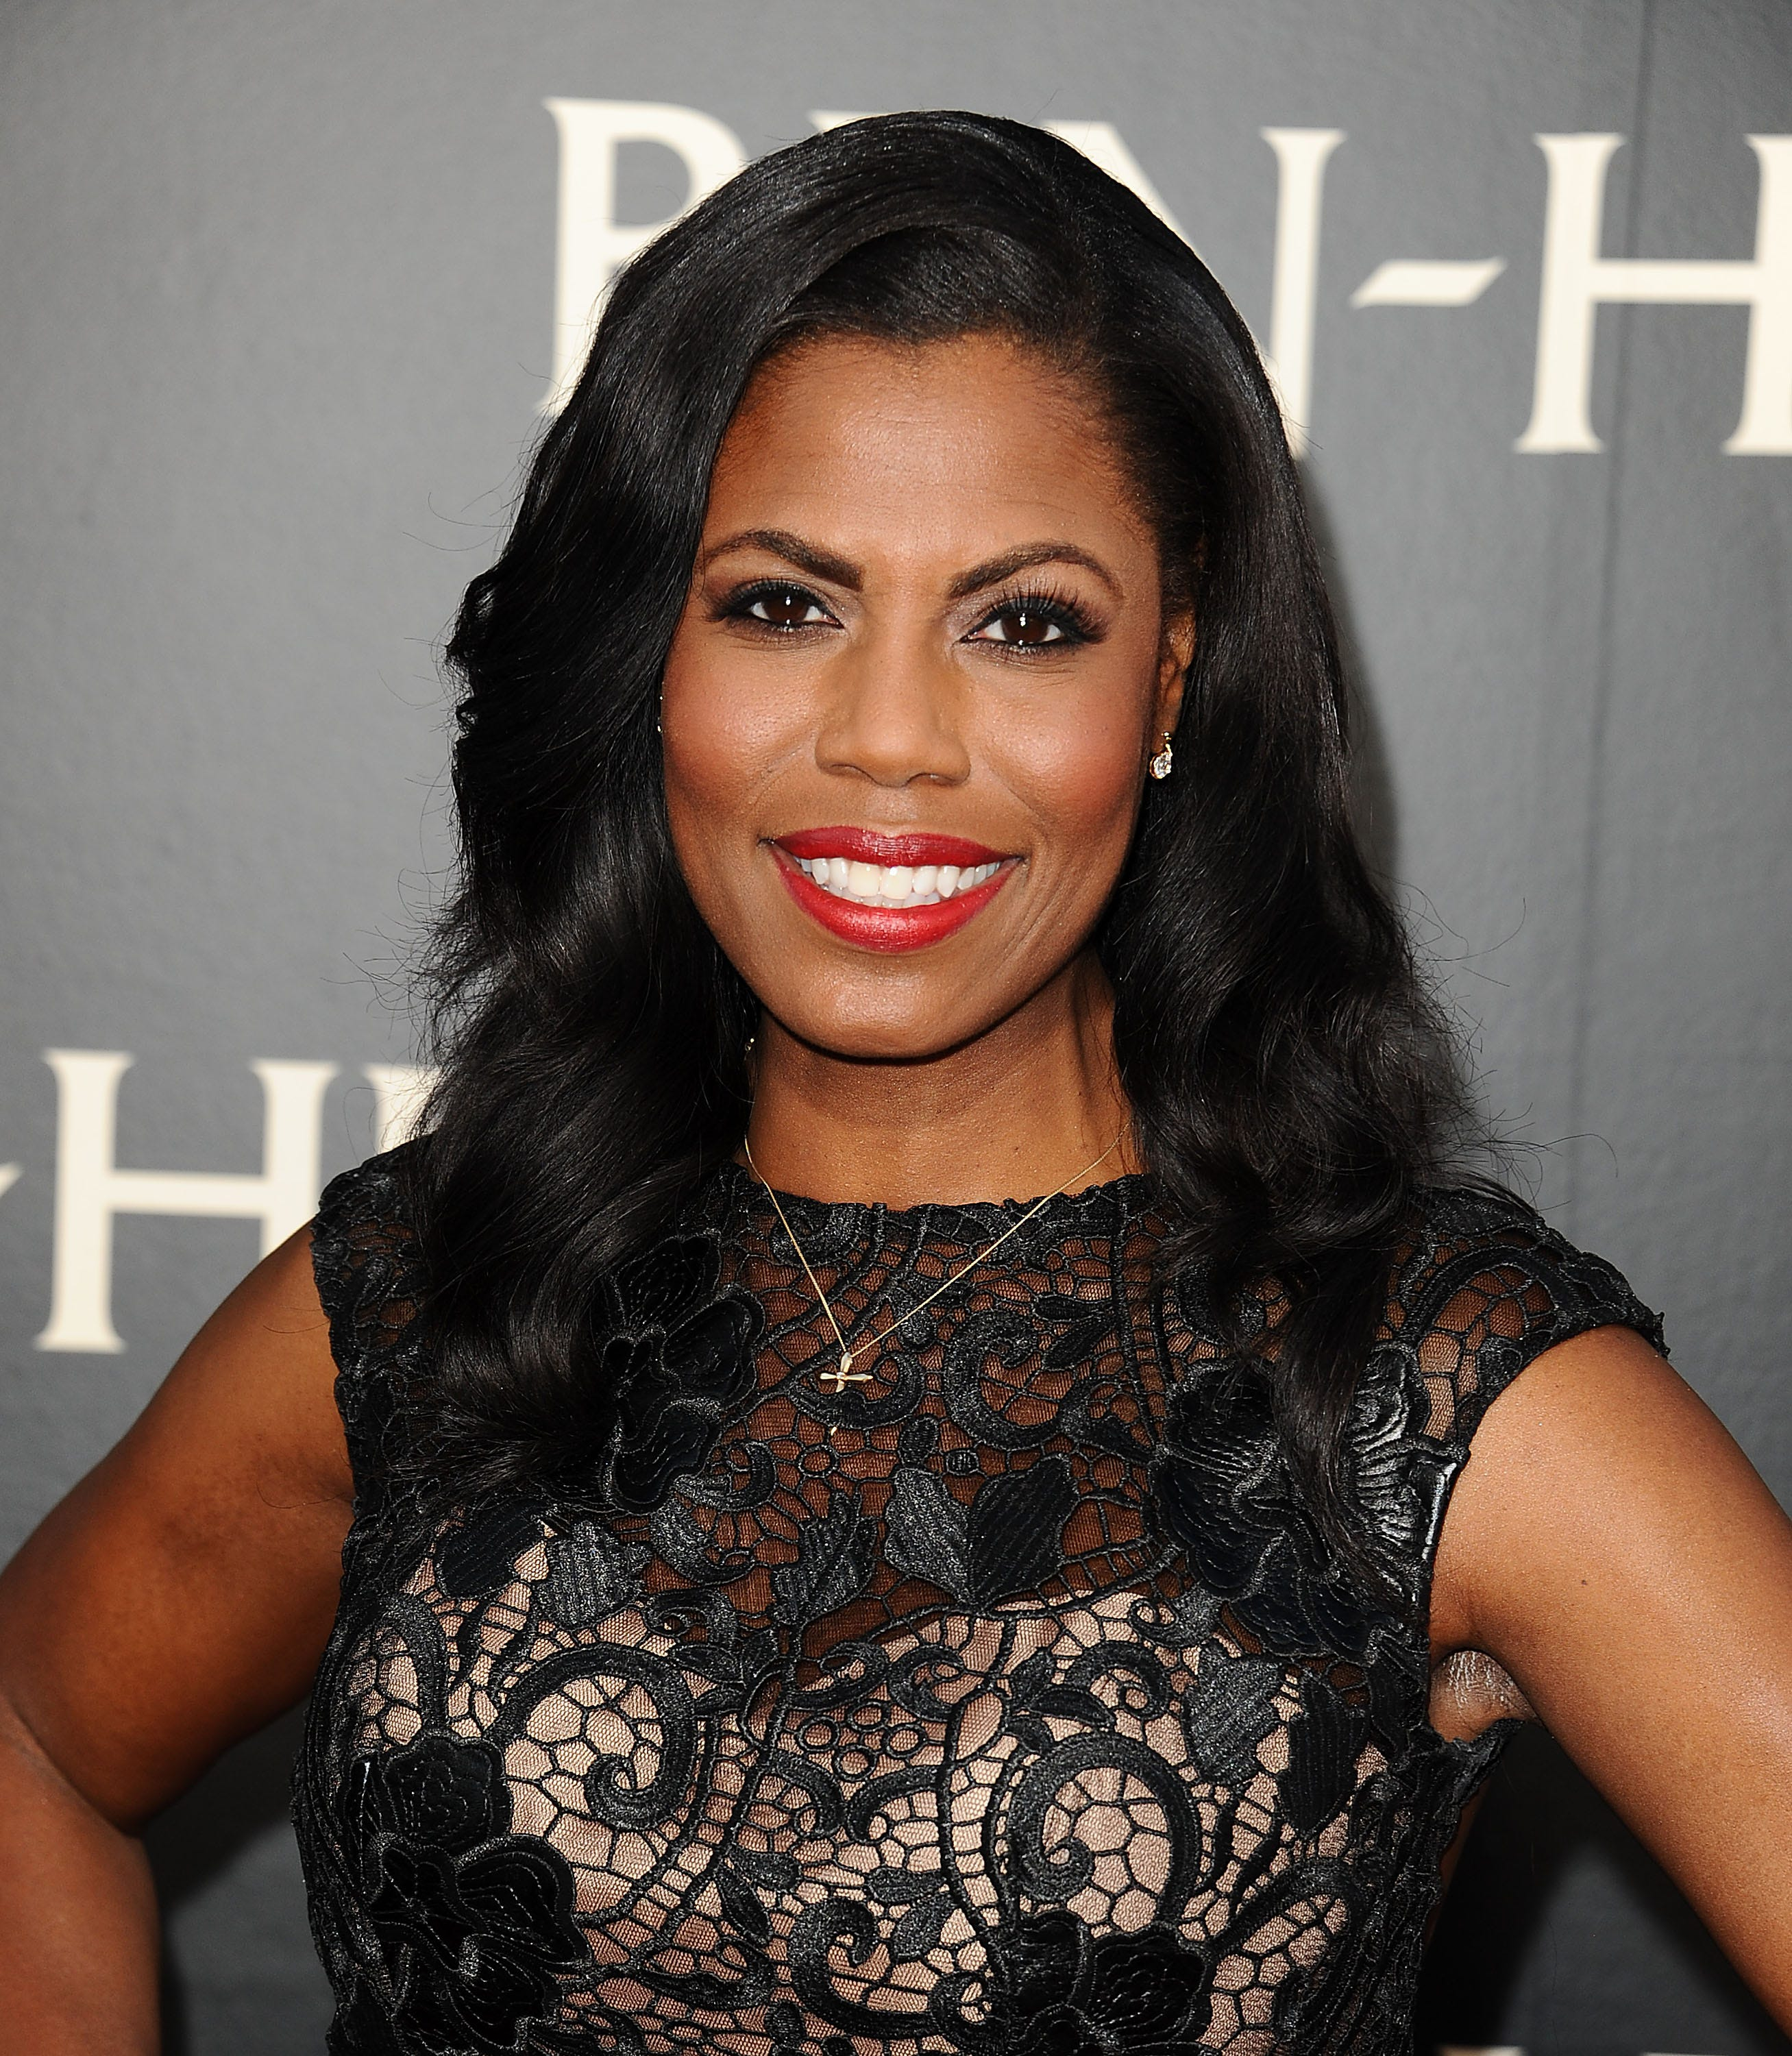 Hacked Omarosa Manigault naked (22 photo), Ass, Paparazzi, Feet, cleavage 2018